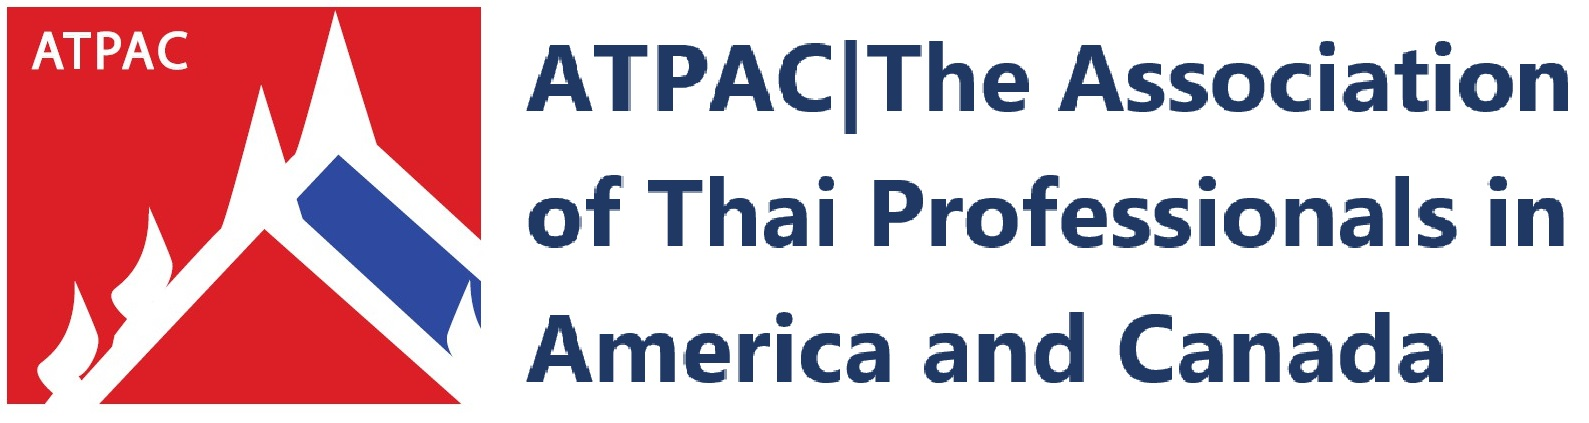 ATPAC|The Association of Thai Professionals in America and Canada